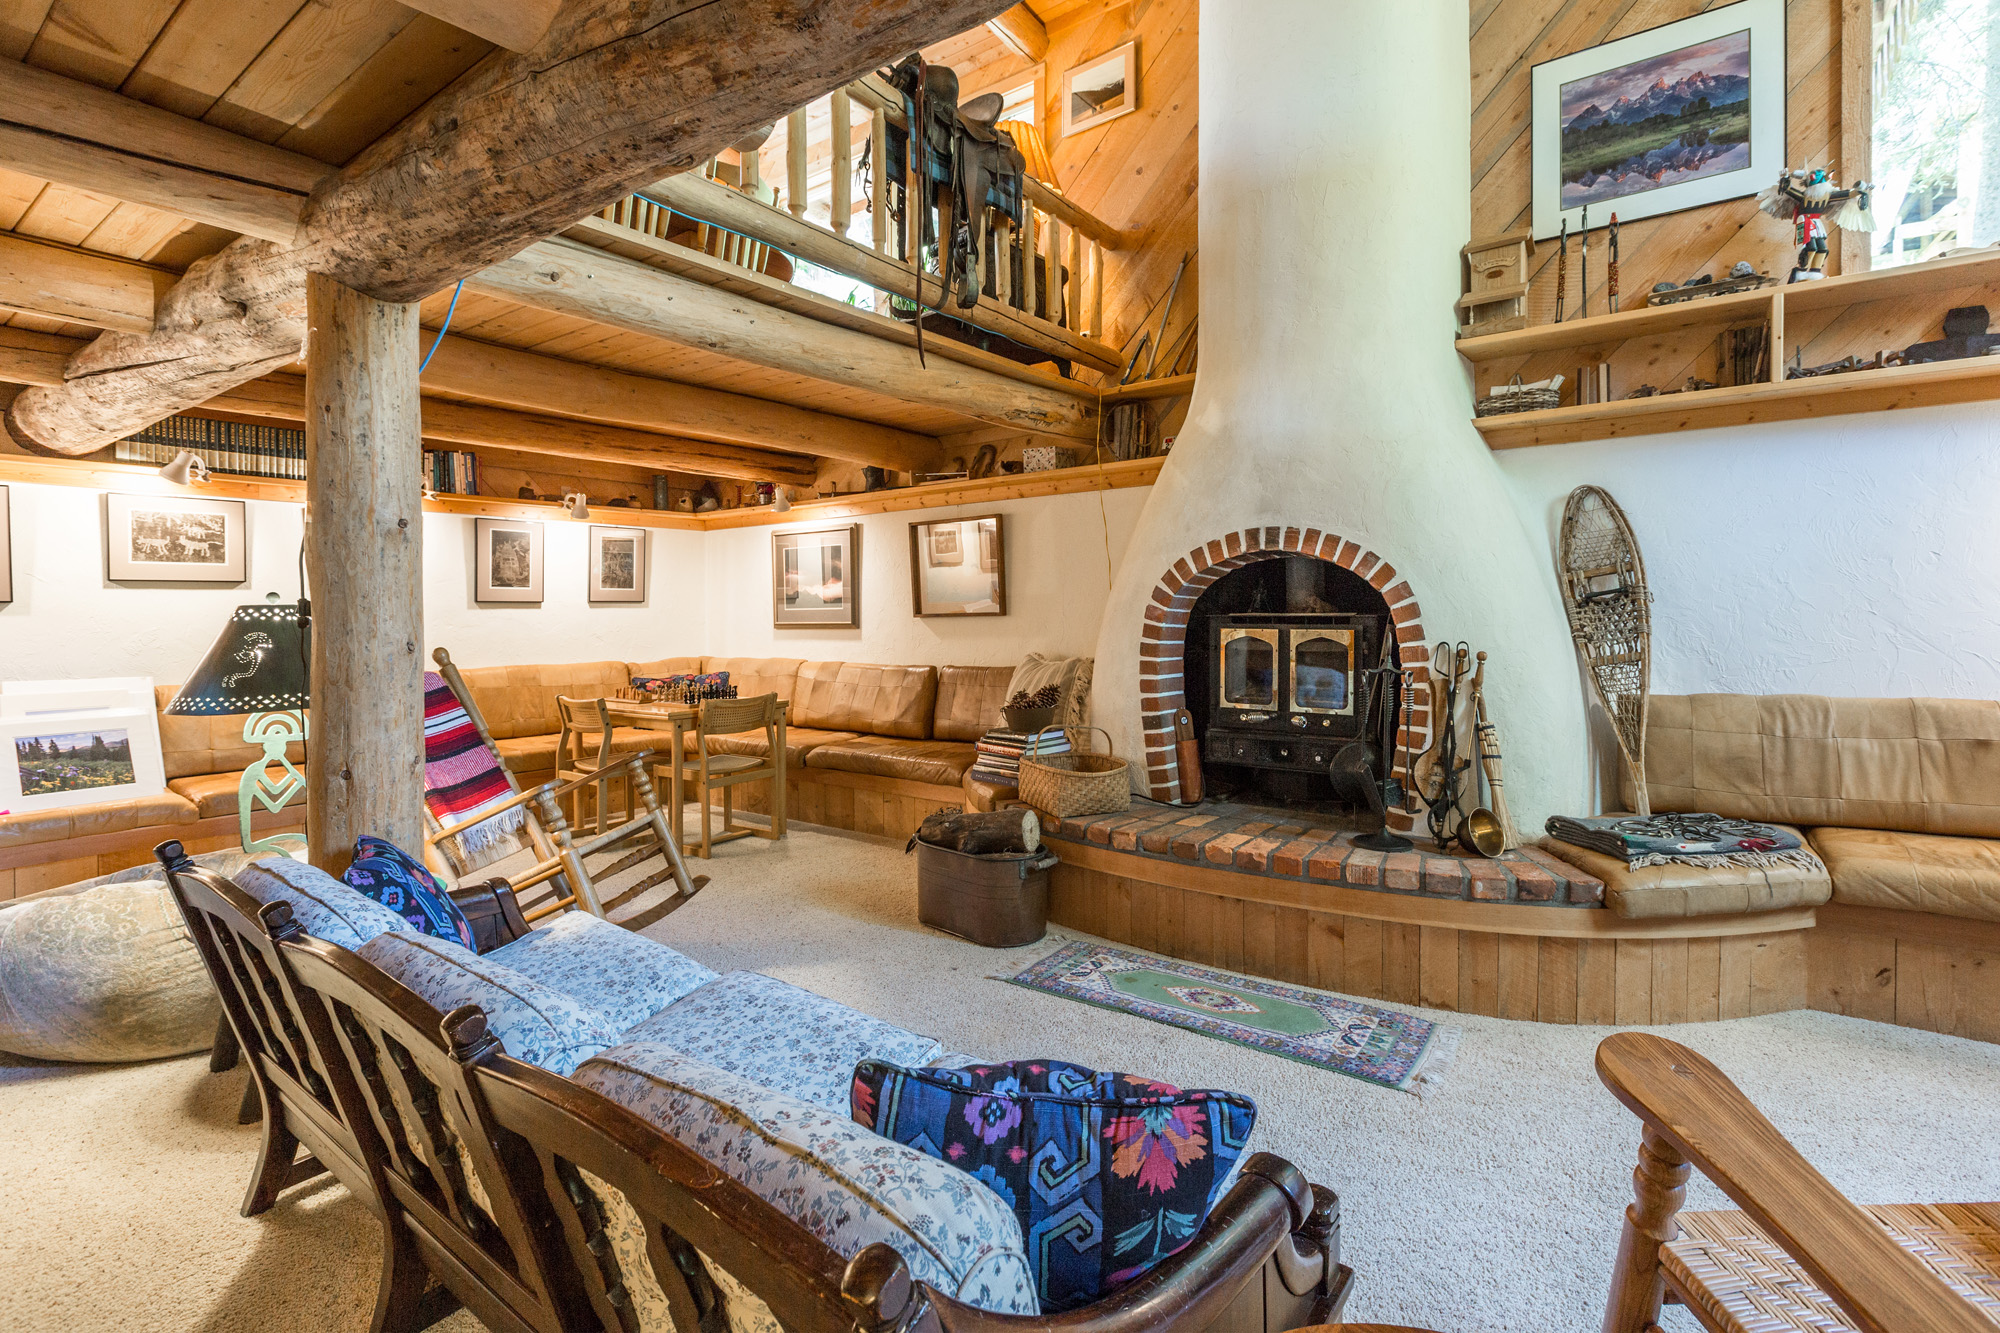 Property For Sale at Teton Treehouse in Downtown Wilson